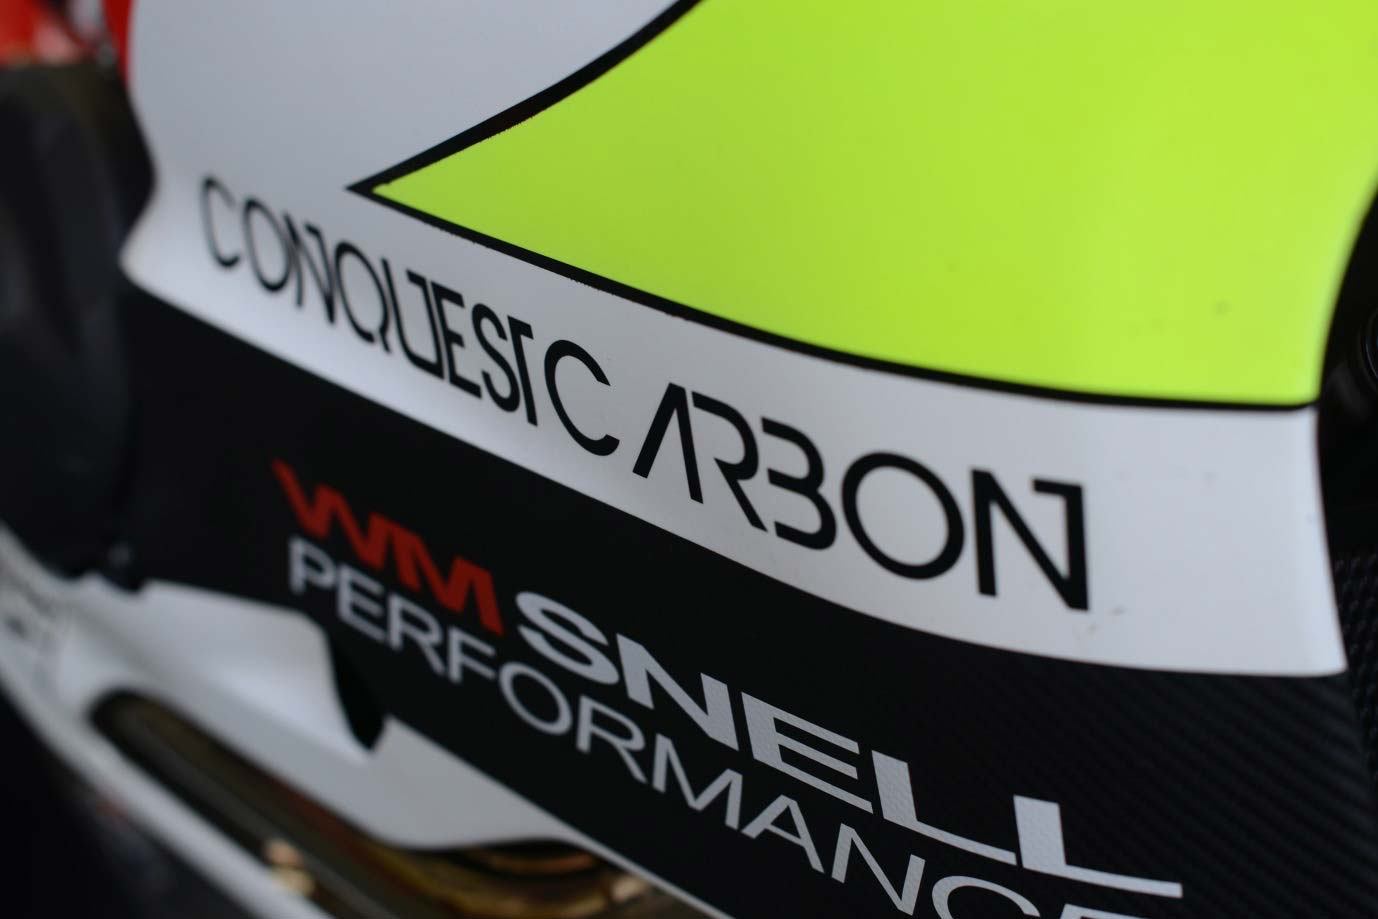 Conquest Carbon - Racing towards 2015 with Nicky Wilson 48